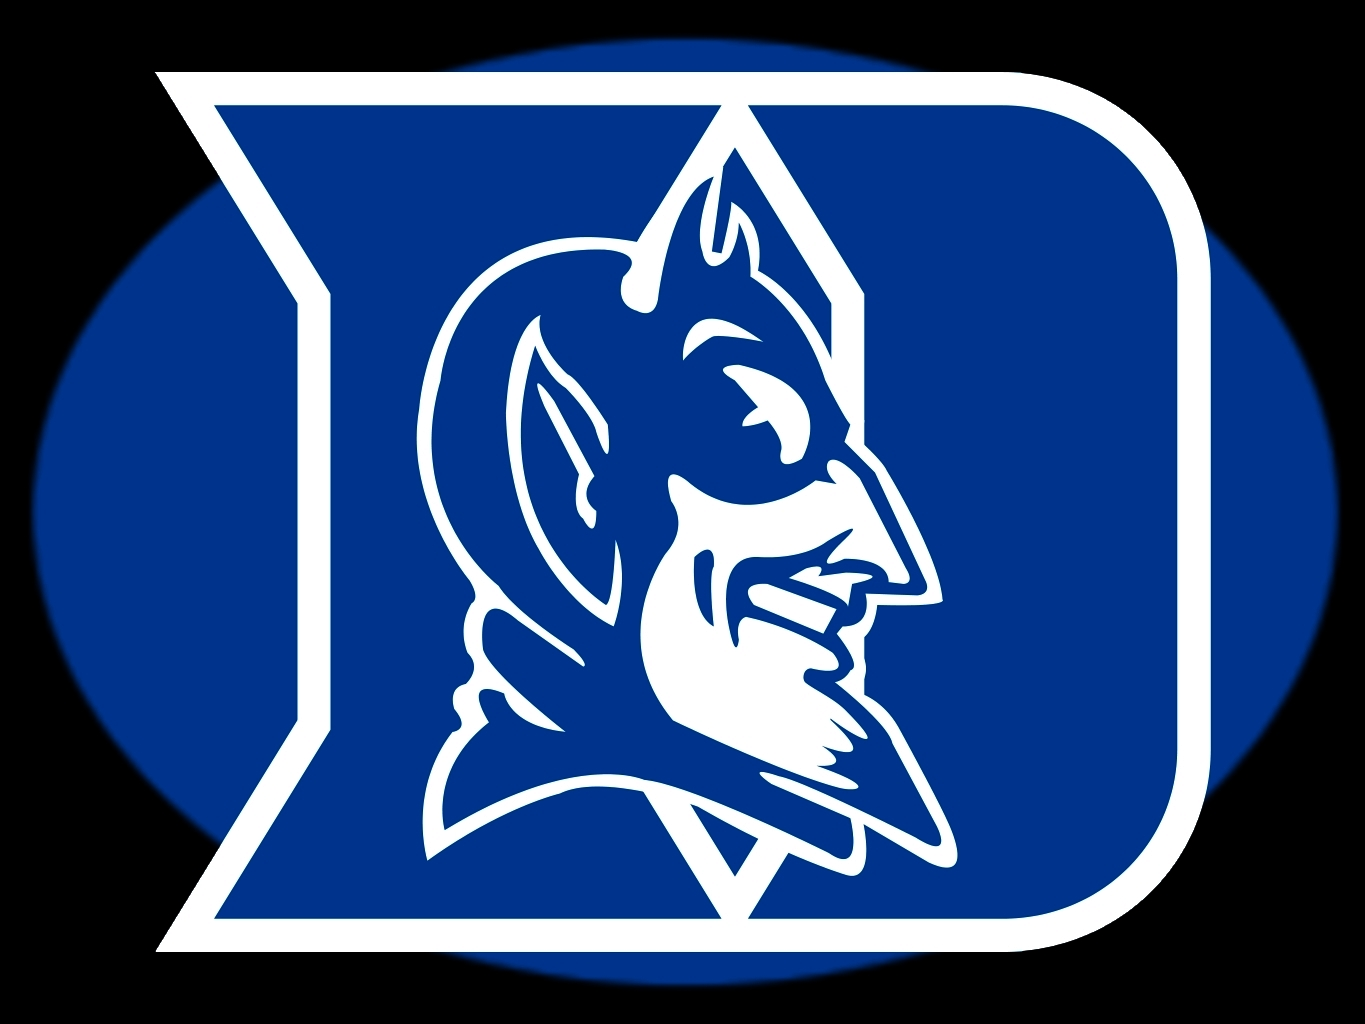 Duke blue devils basketball clipart - ClipartFox